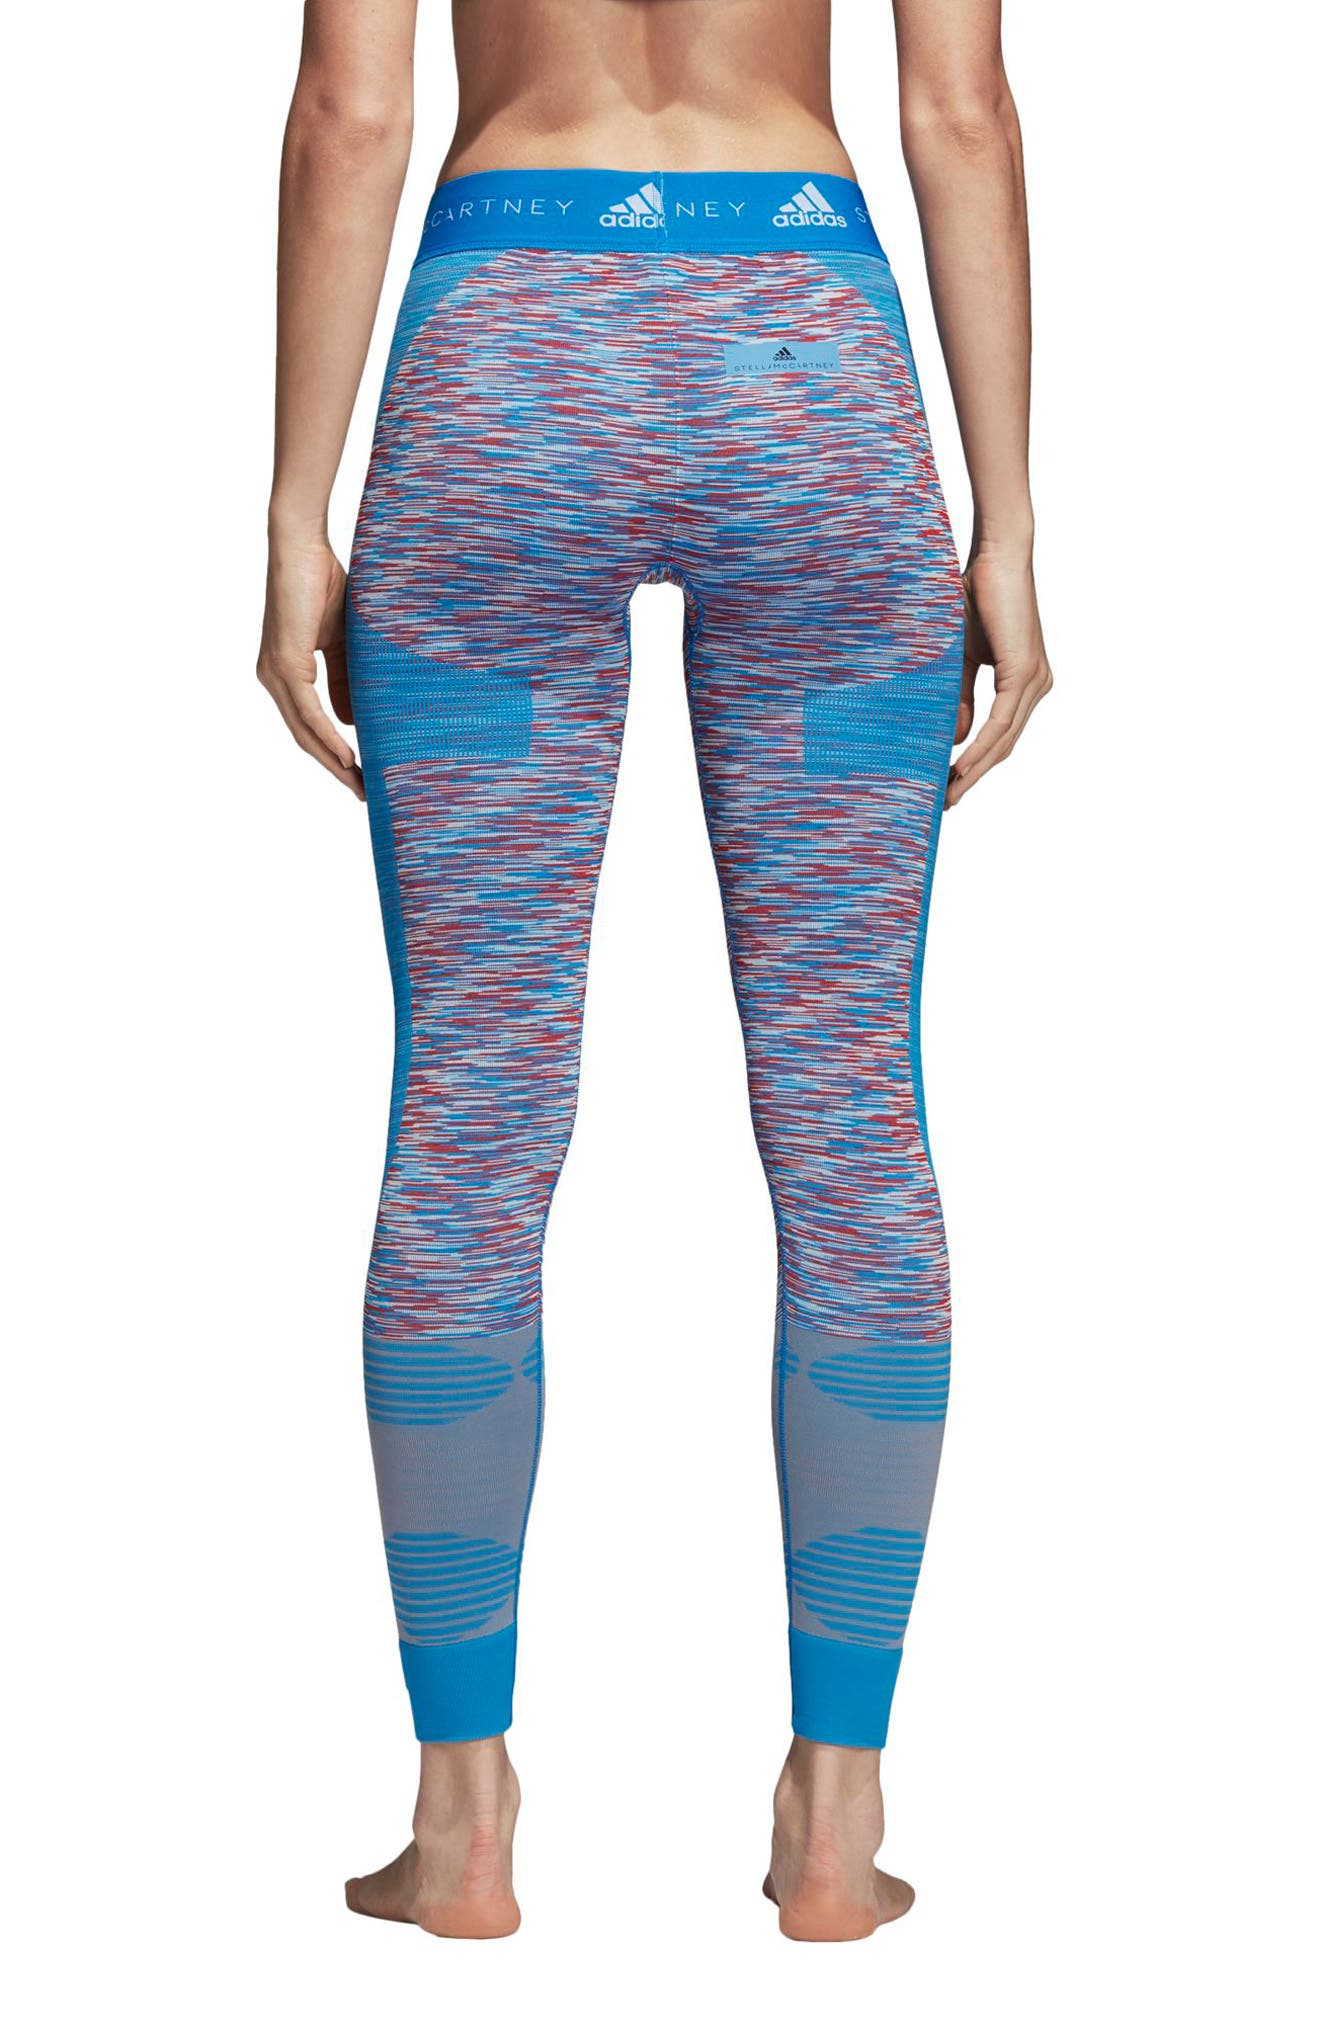 Yoga Seamless Space Dye Leggings,                             Alternate thumbnail 2, color,                             400